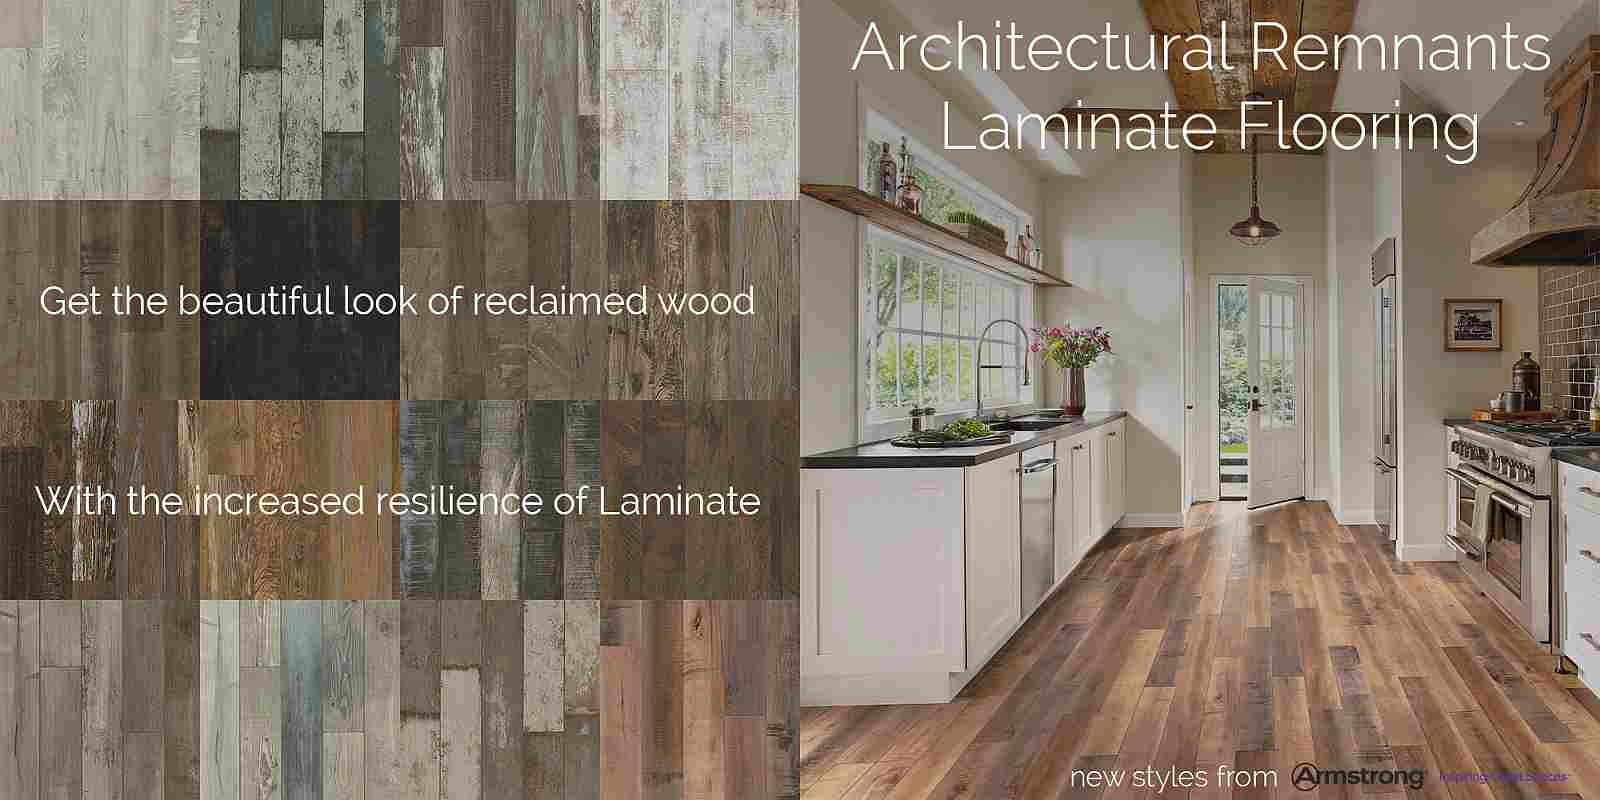 Shop The Most Beautiful Reclaimed Wood Looks On Laminate Floors Today